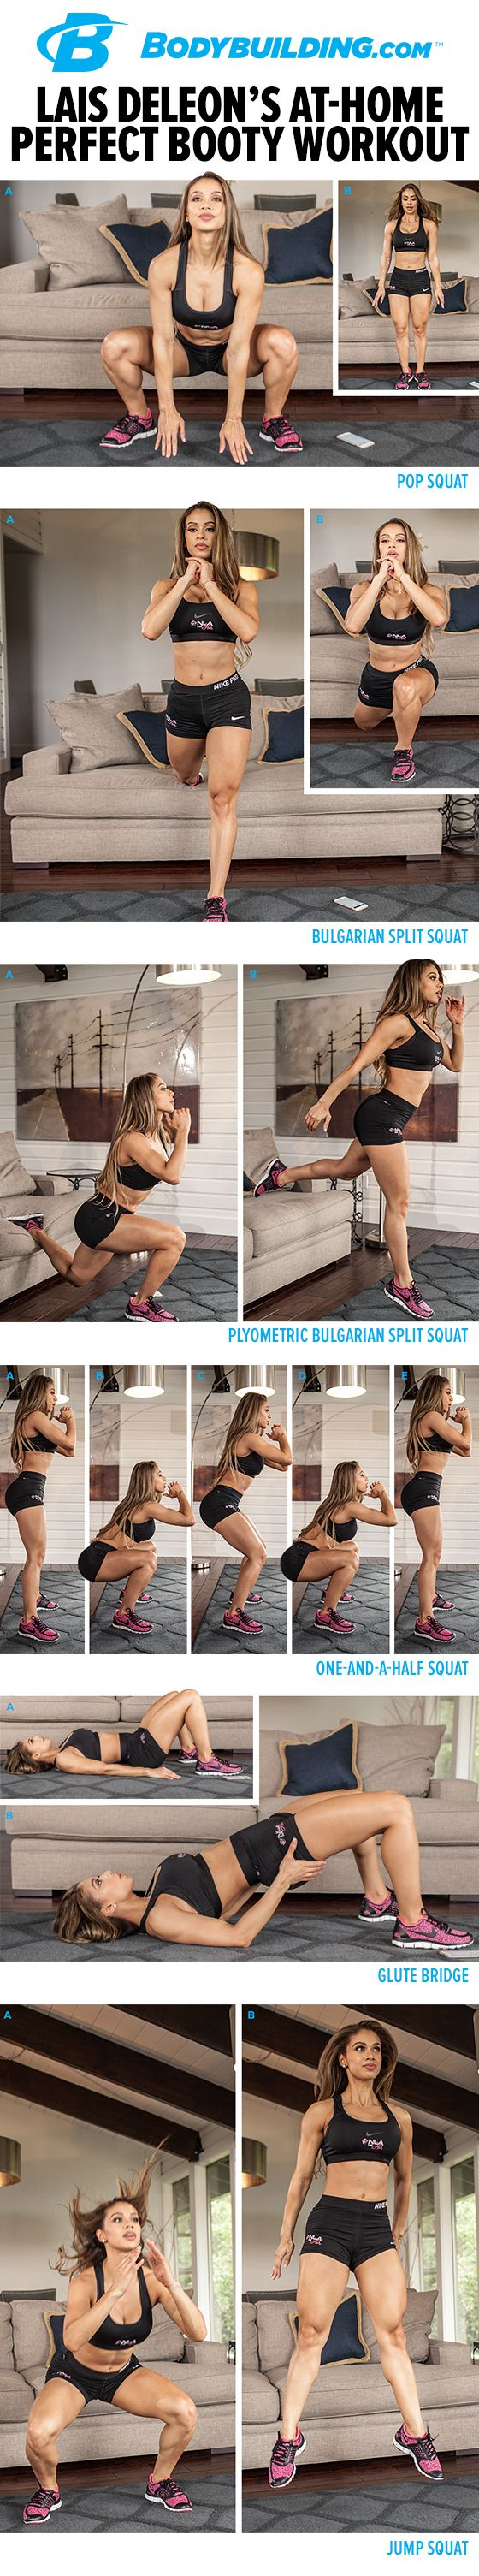 Lais DeLeon's At-Home Perfect Booty Workout! If you've got 20 minutes and a couch, you can sweat your way to a stronger lower body and better booty!: